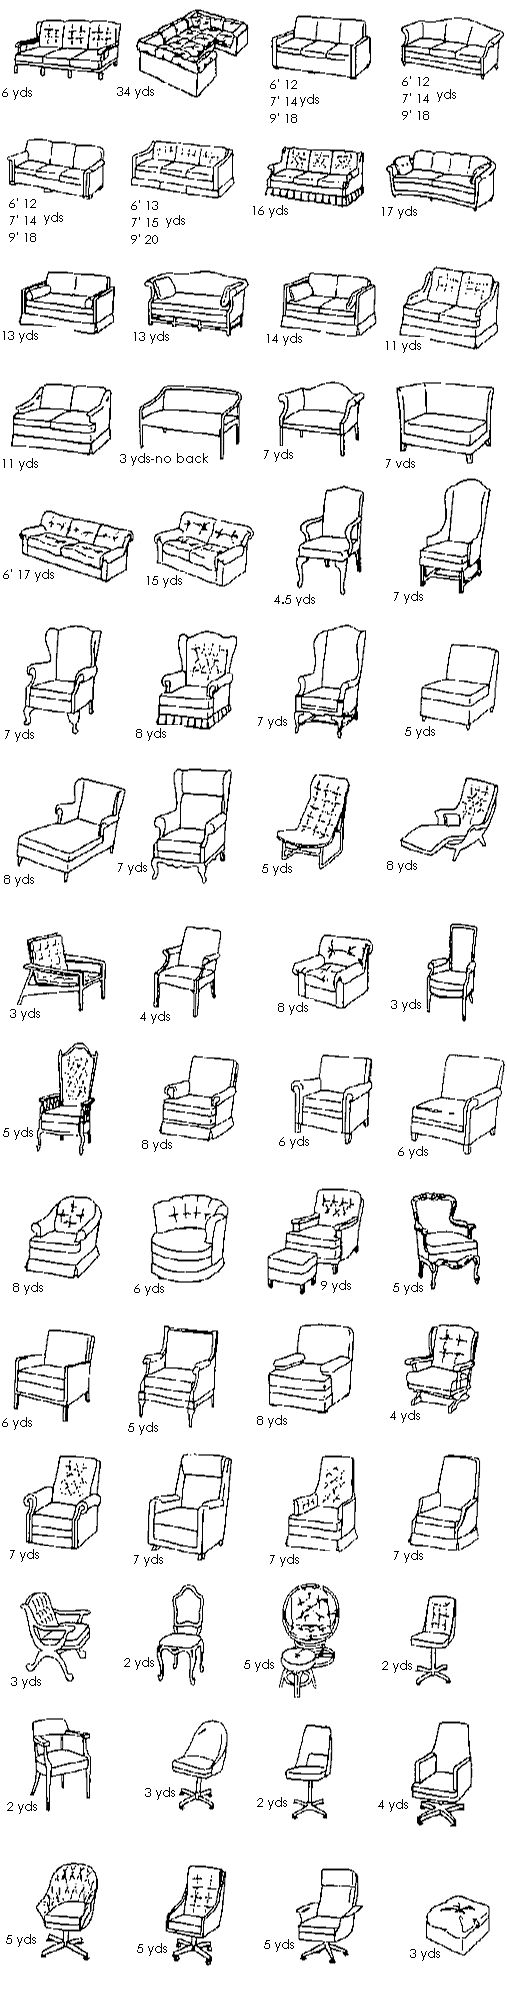 great chart for estimating fabric needs for upholstery